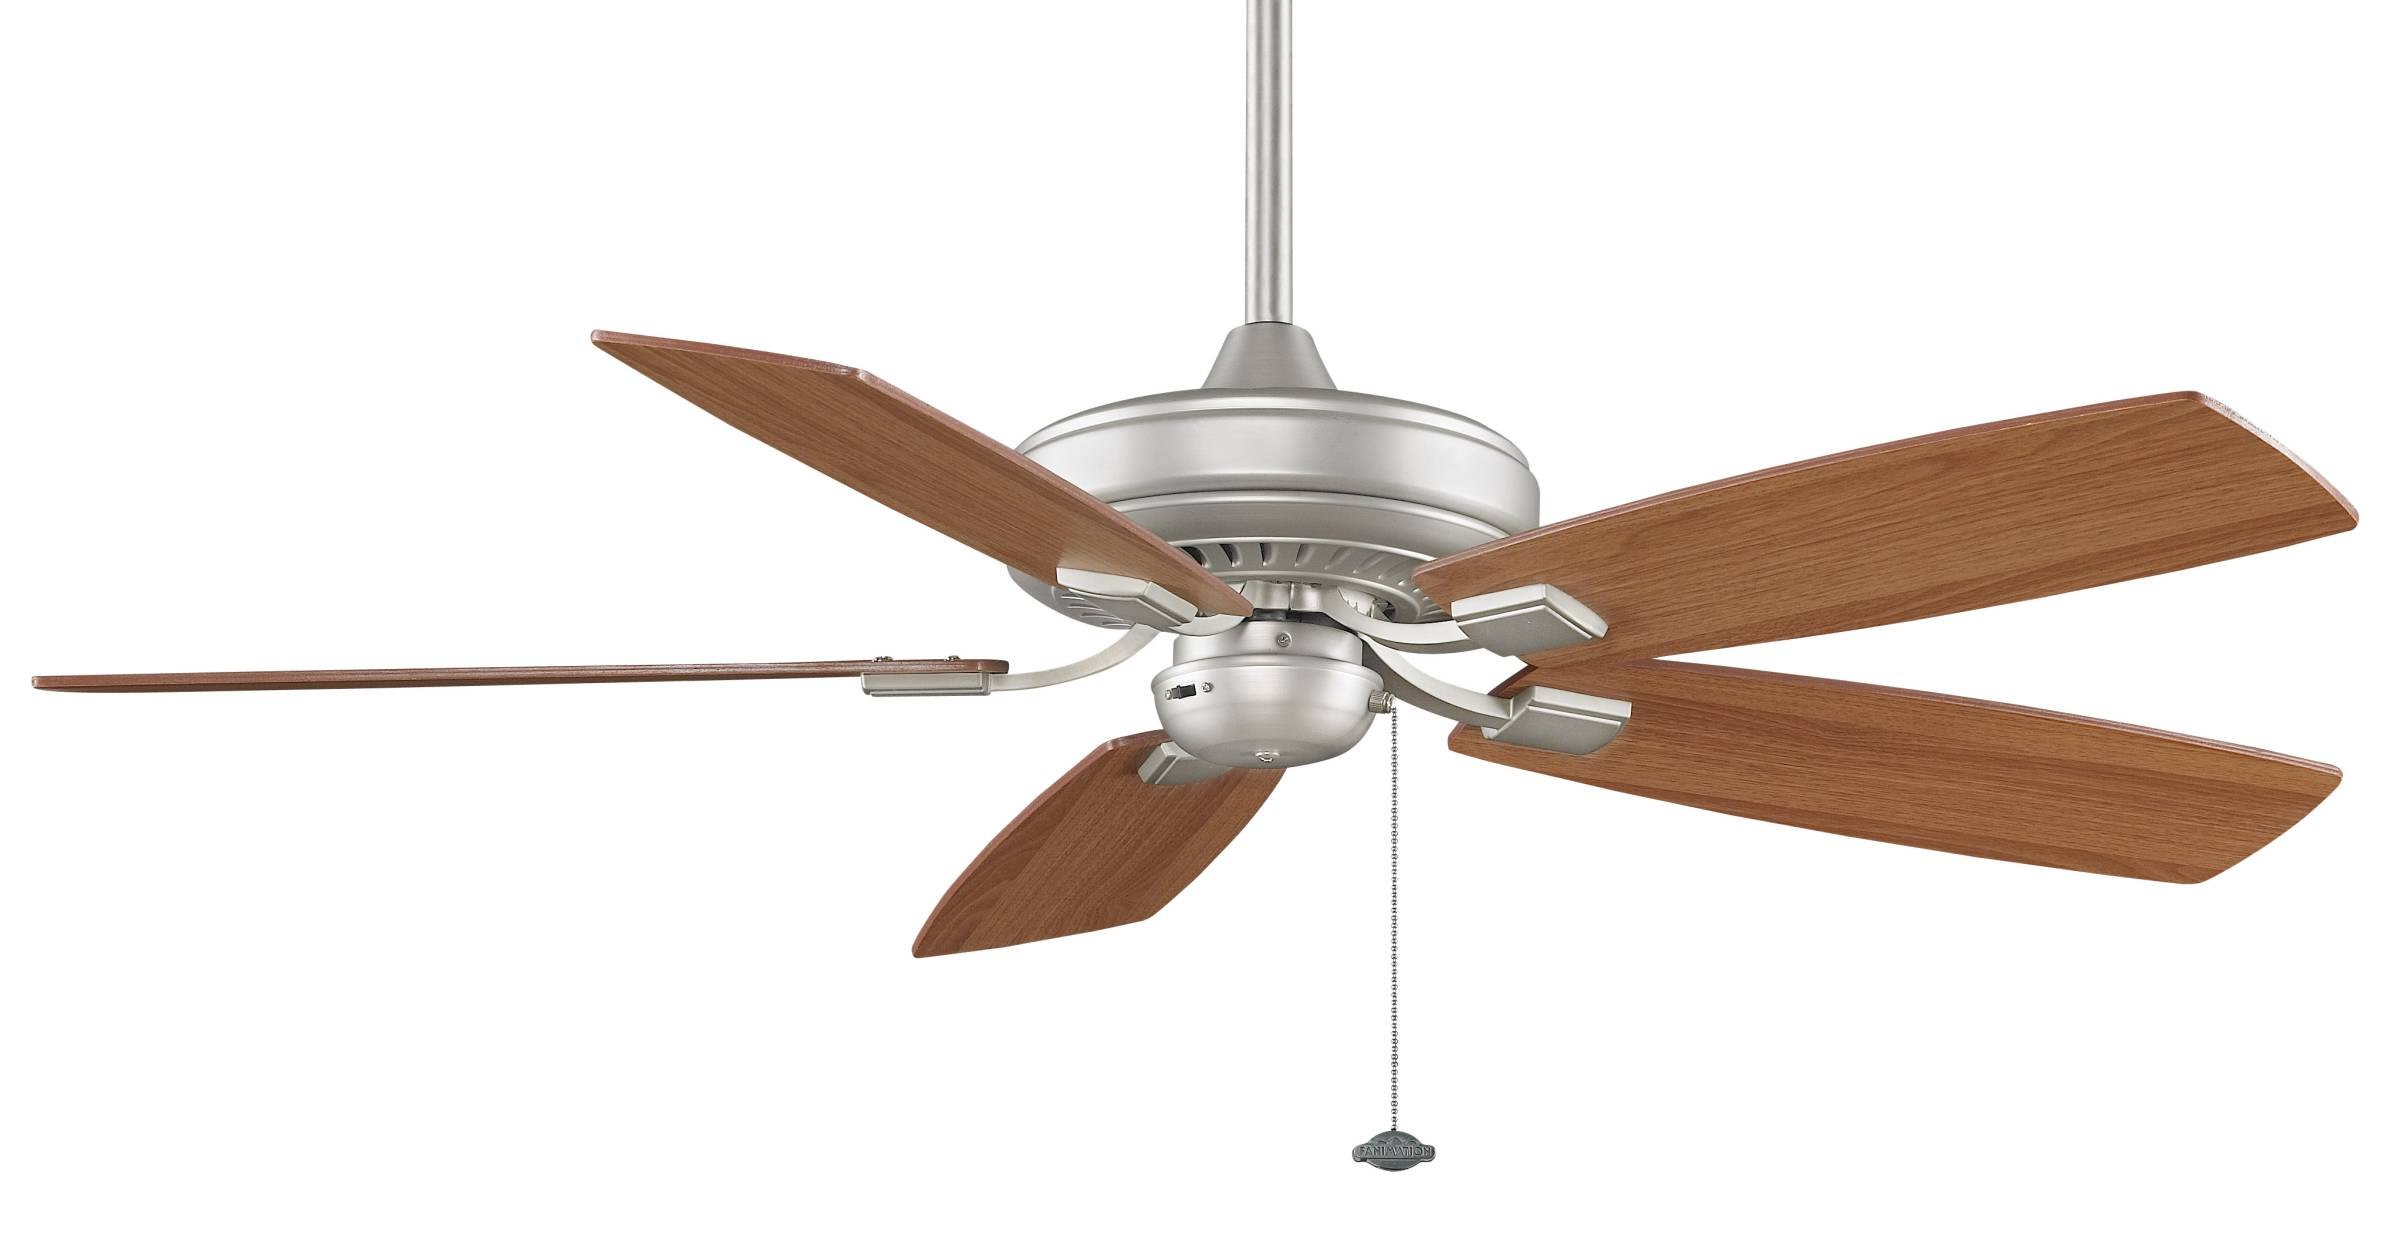 Decorative ceiling fans 10 tips for buying warisan lighting decorative ceiling fans photo 9 aloadofball Choice Image